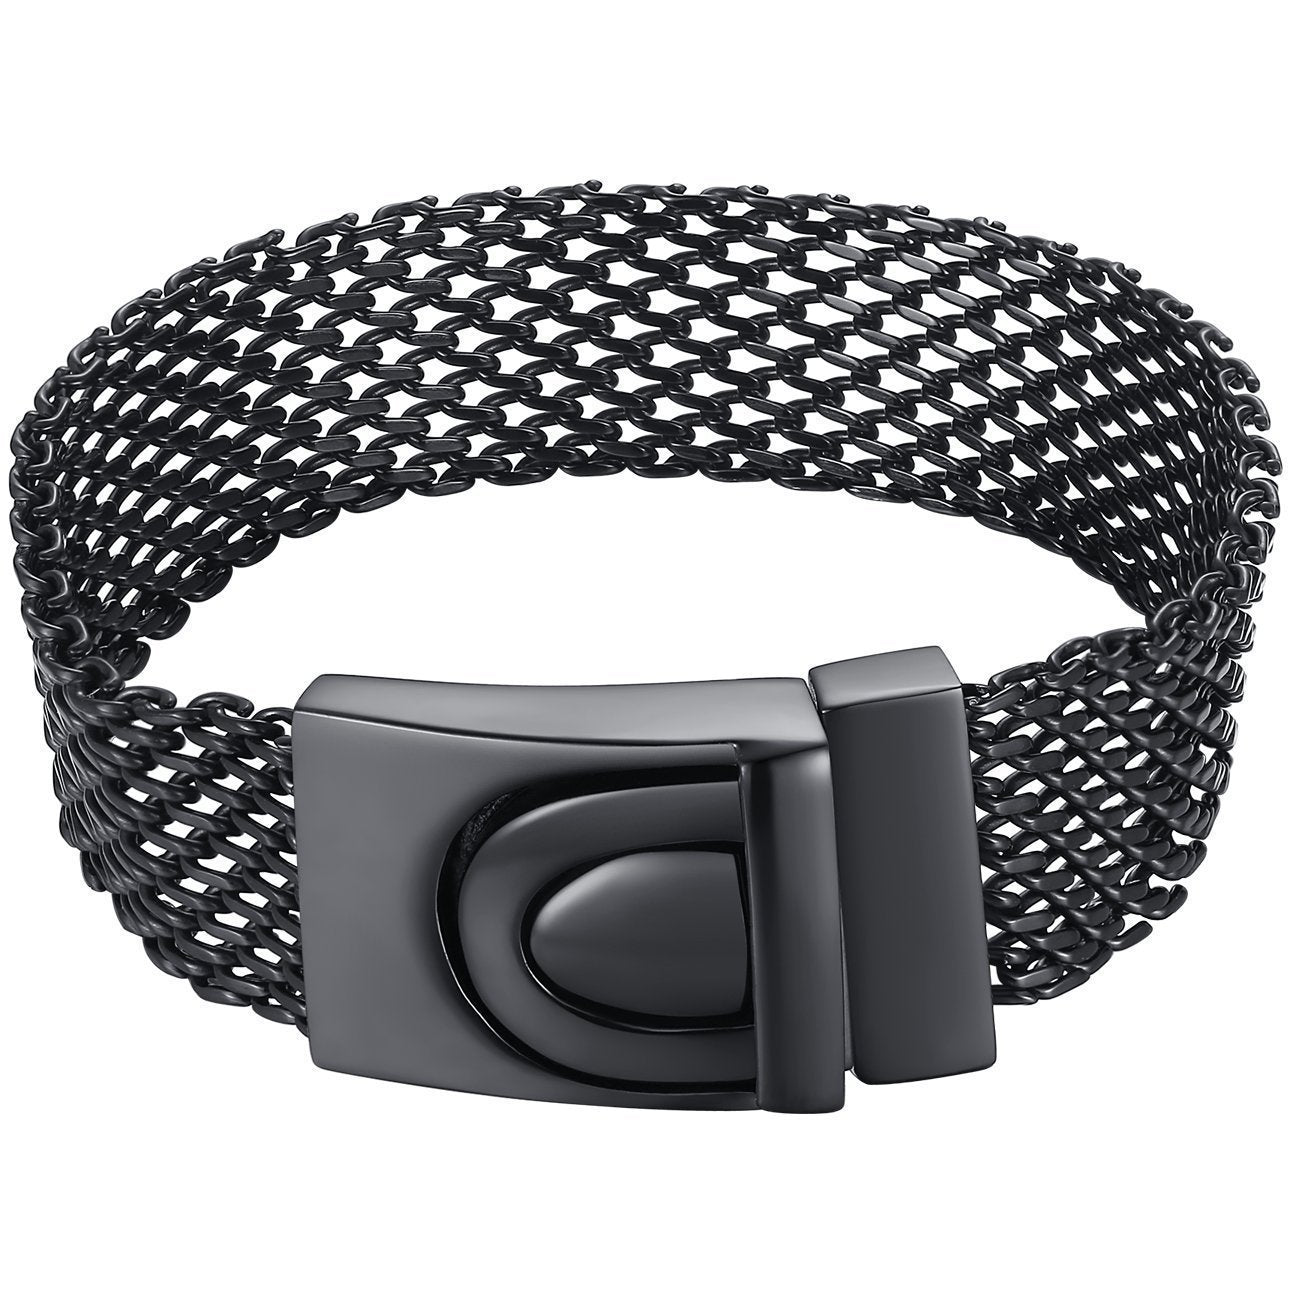 Aoiy Men's Stainless Steel Mesh Chain Belt Style Bracelet (black-color) @ Sons of Odin™ -Jewelry on